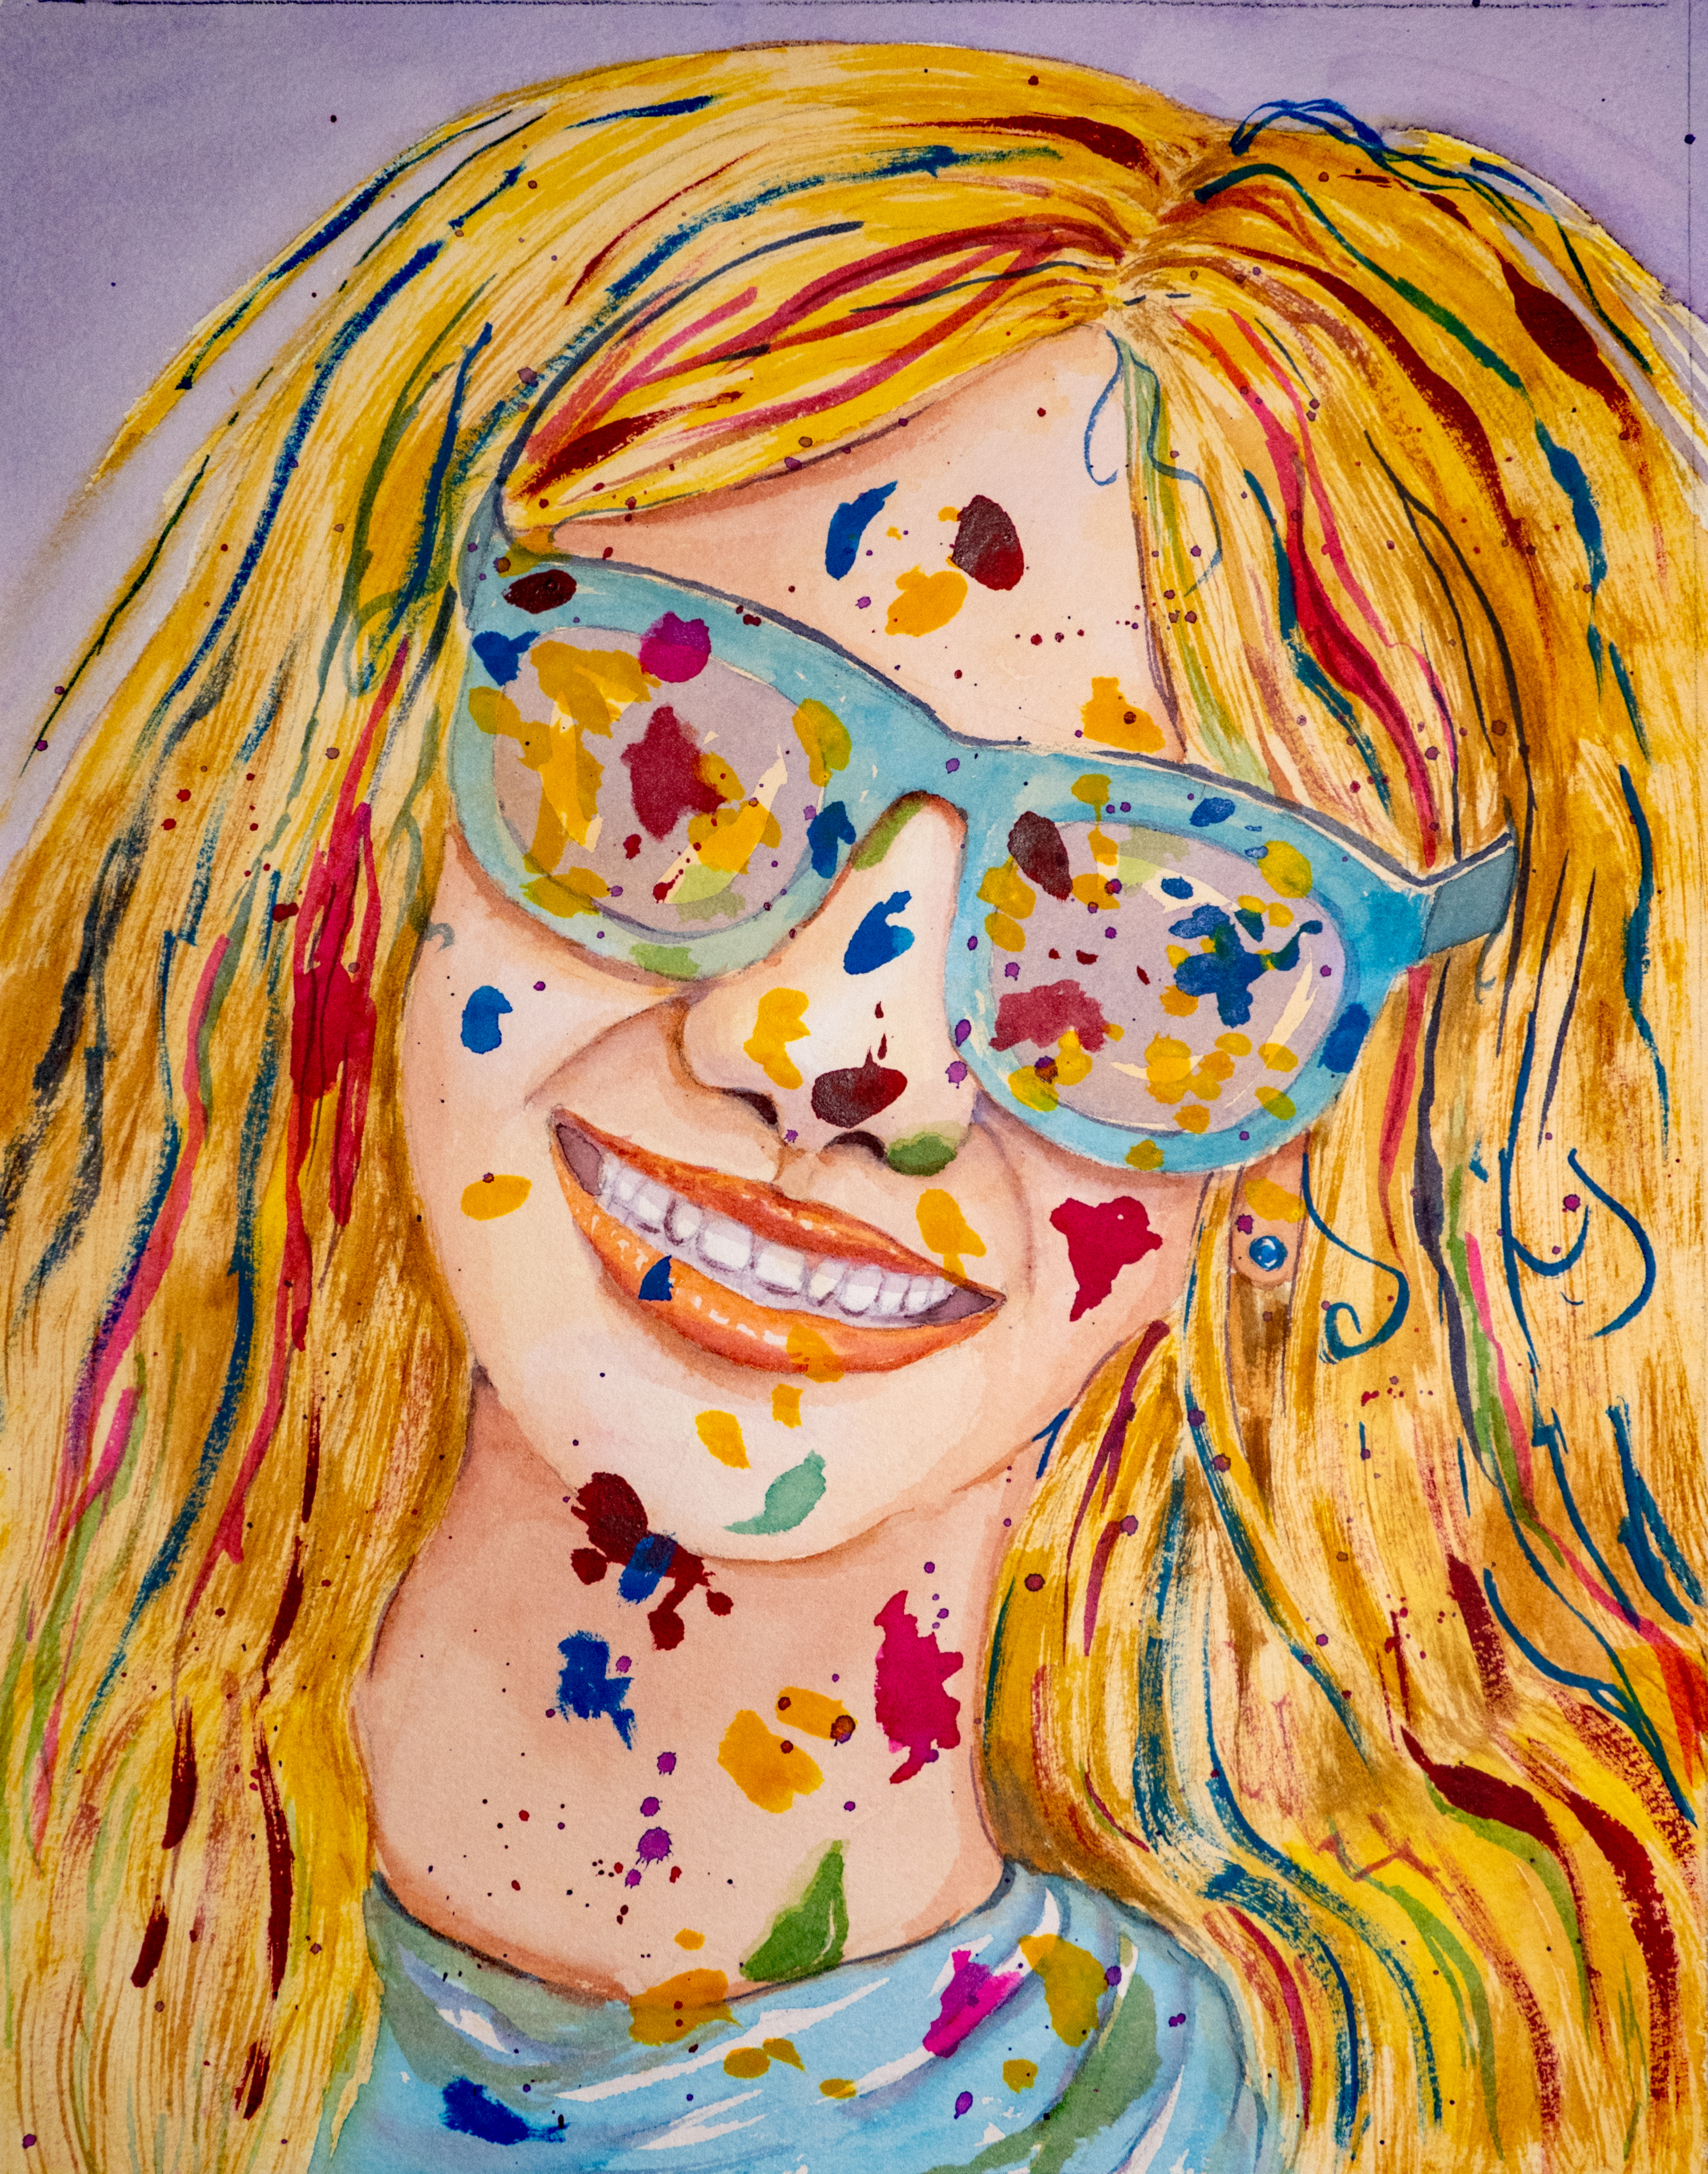 A painting of a young woman's smiling face with blue sunglasses, blonde hair, and brightly colored paint spatters